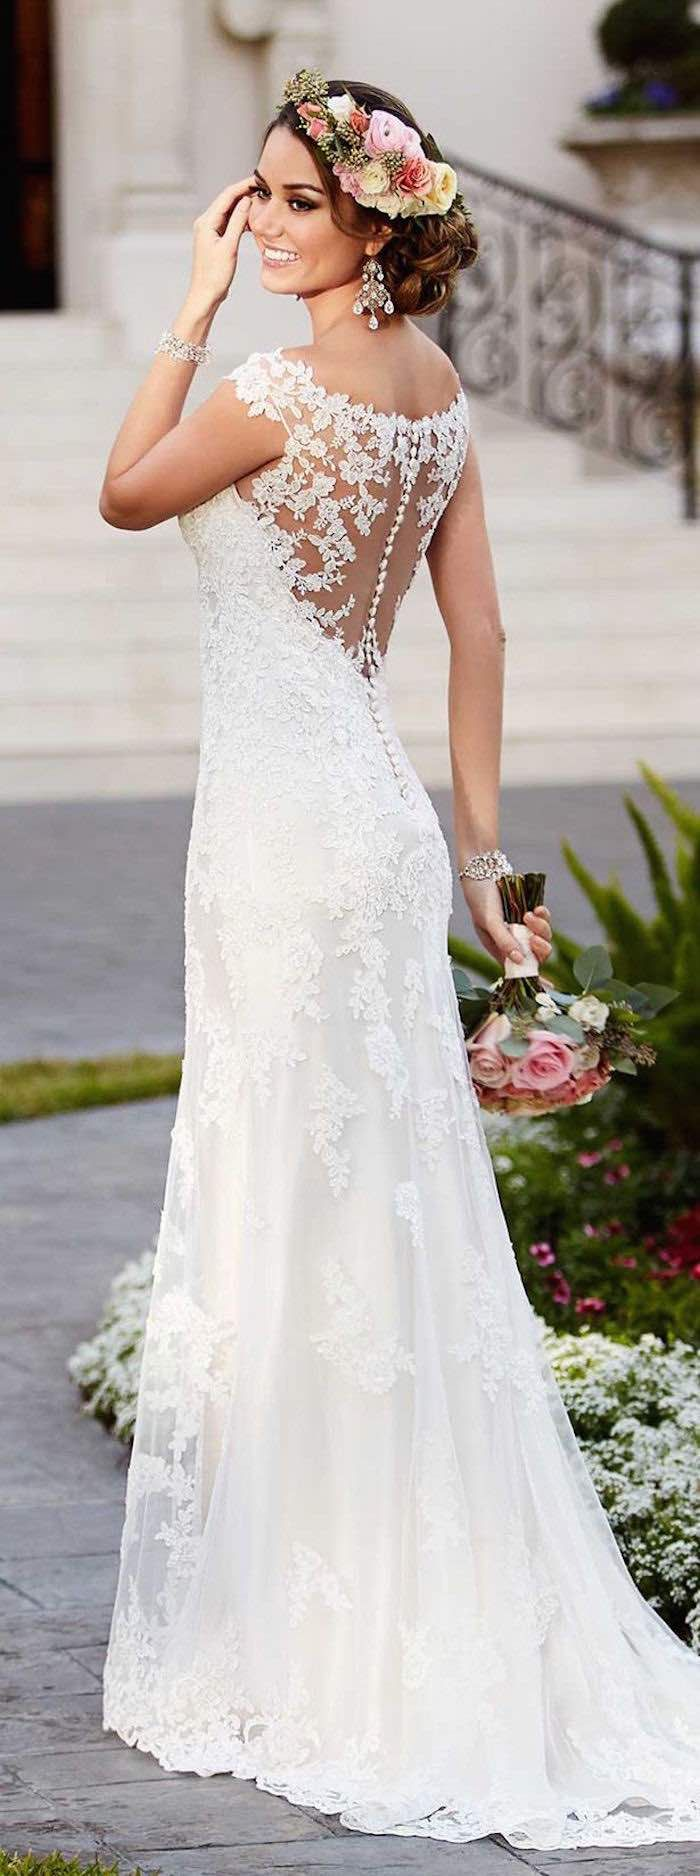 Plus size wedding dresses with red accents  ace garcia acemarg on Pinterest